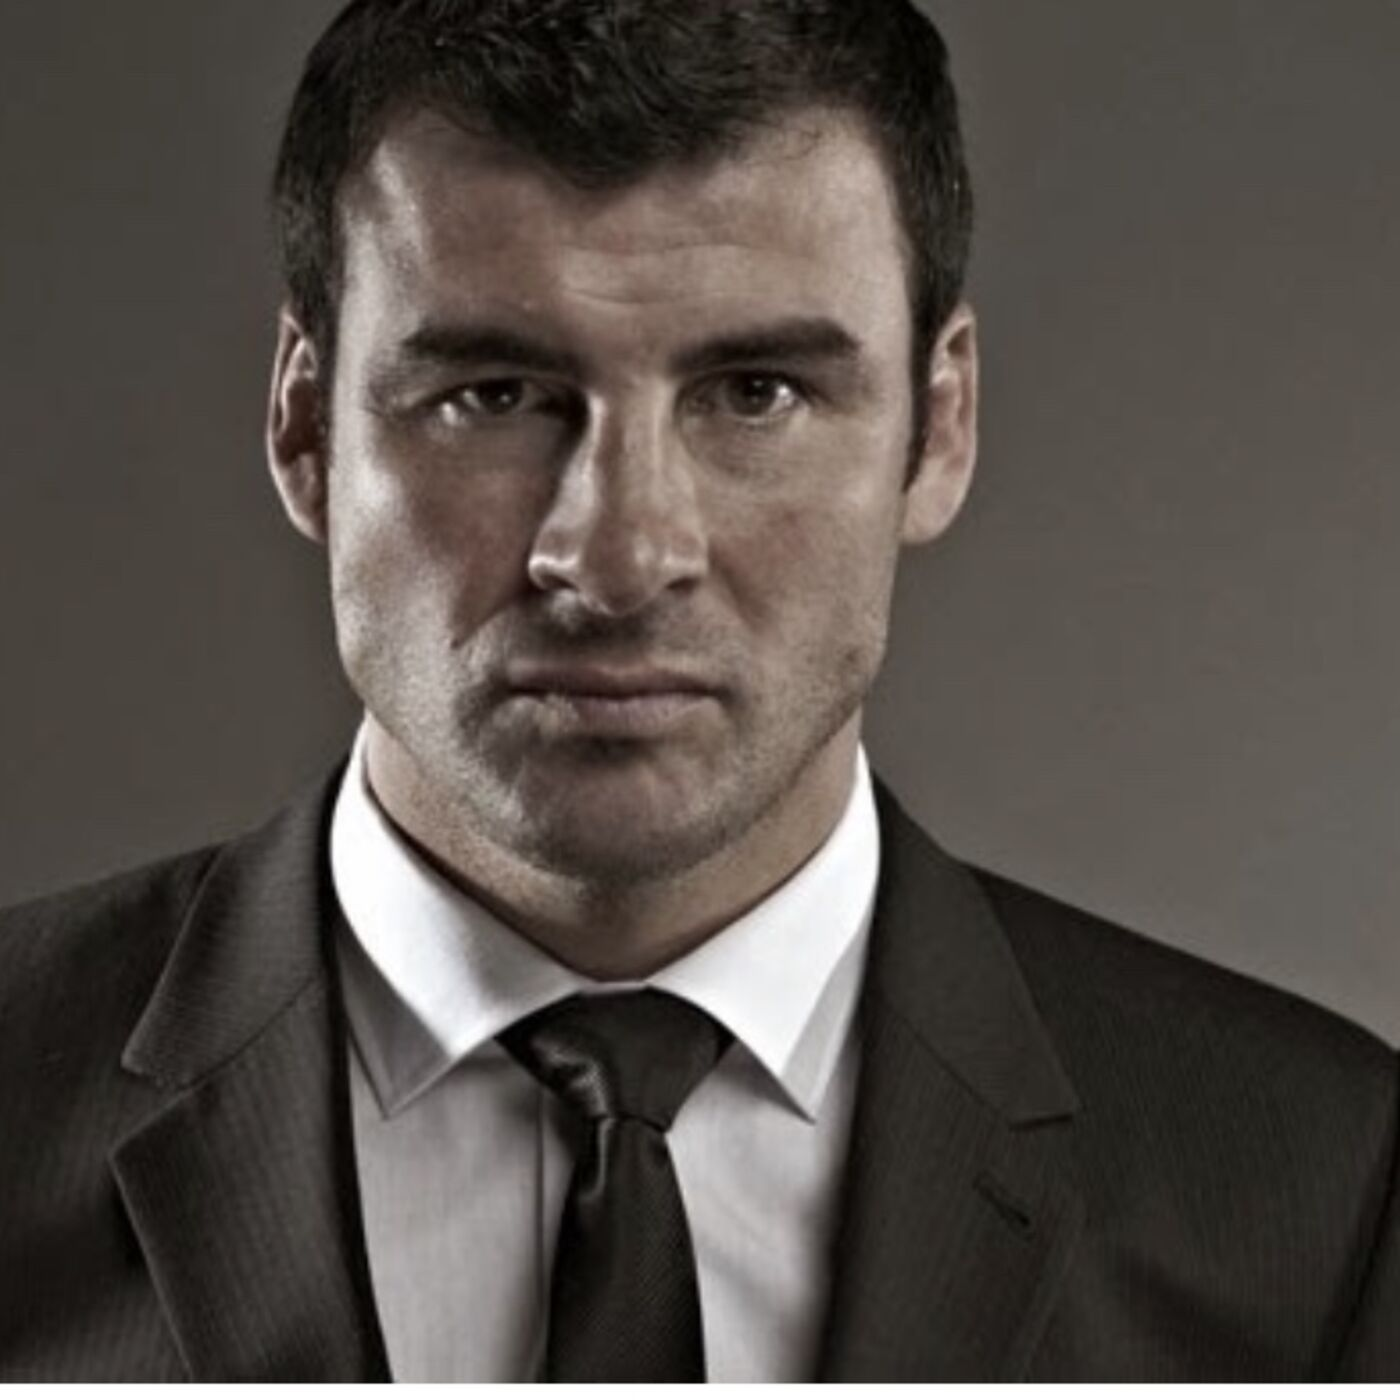 Kelly's Heroes with Joe Calzaghe